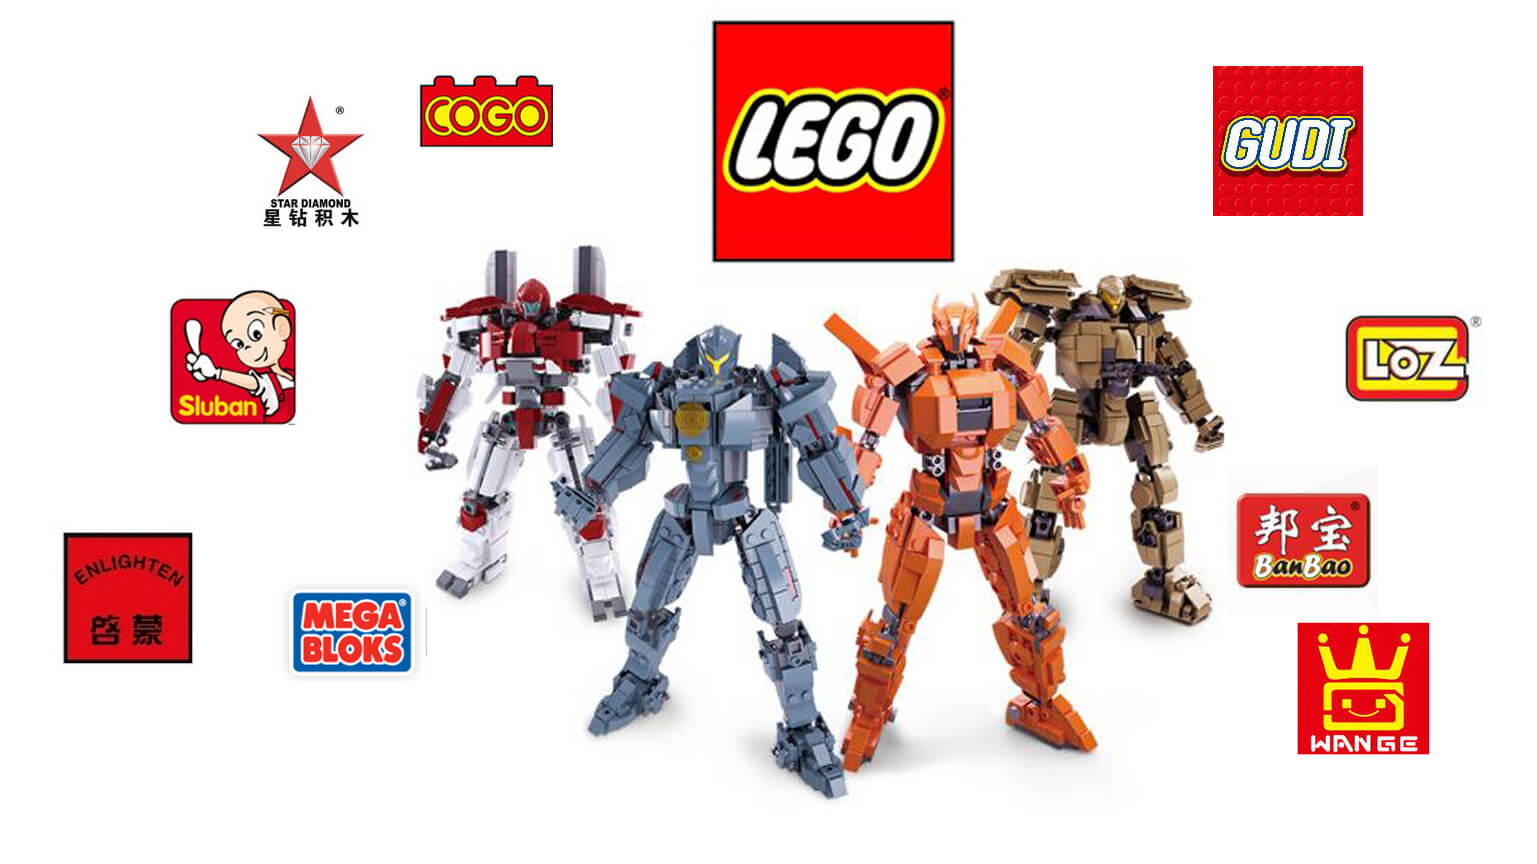 10 Top Building Brick Toys Brand- No Only LEGO - TonyPromos